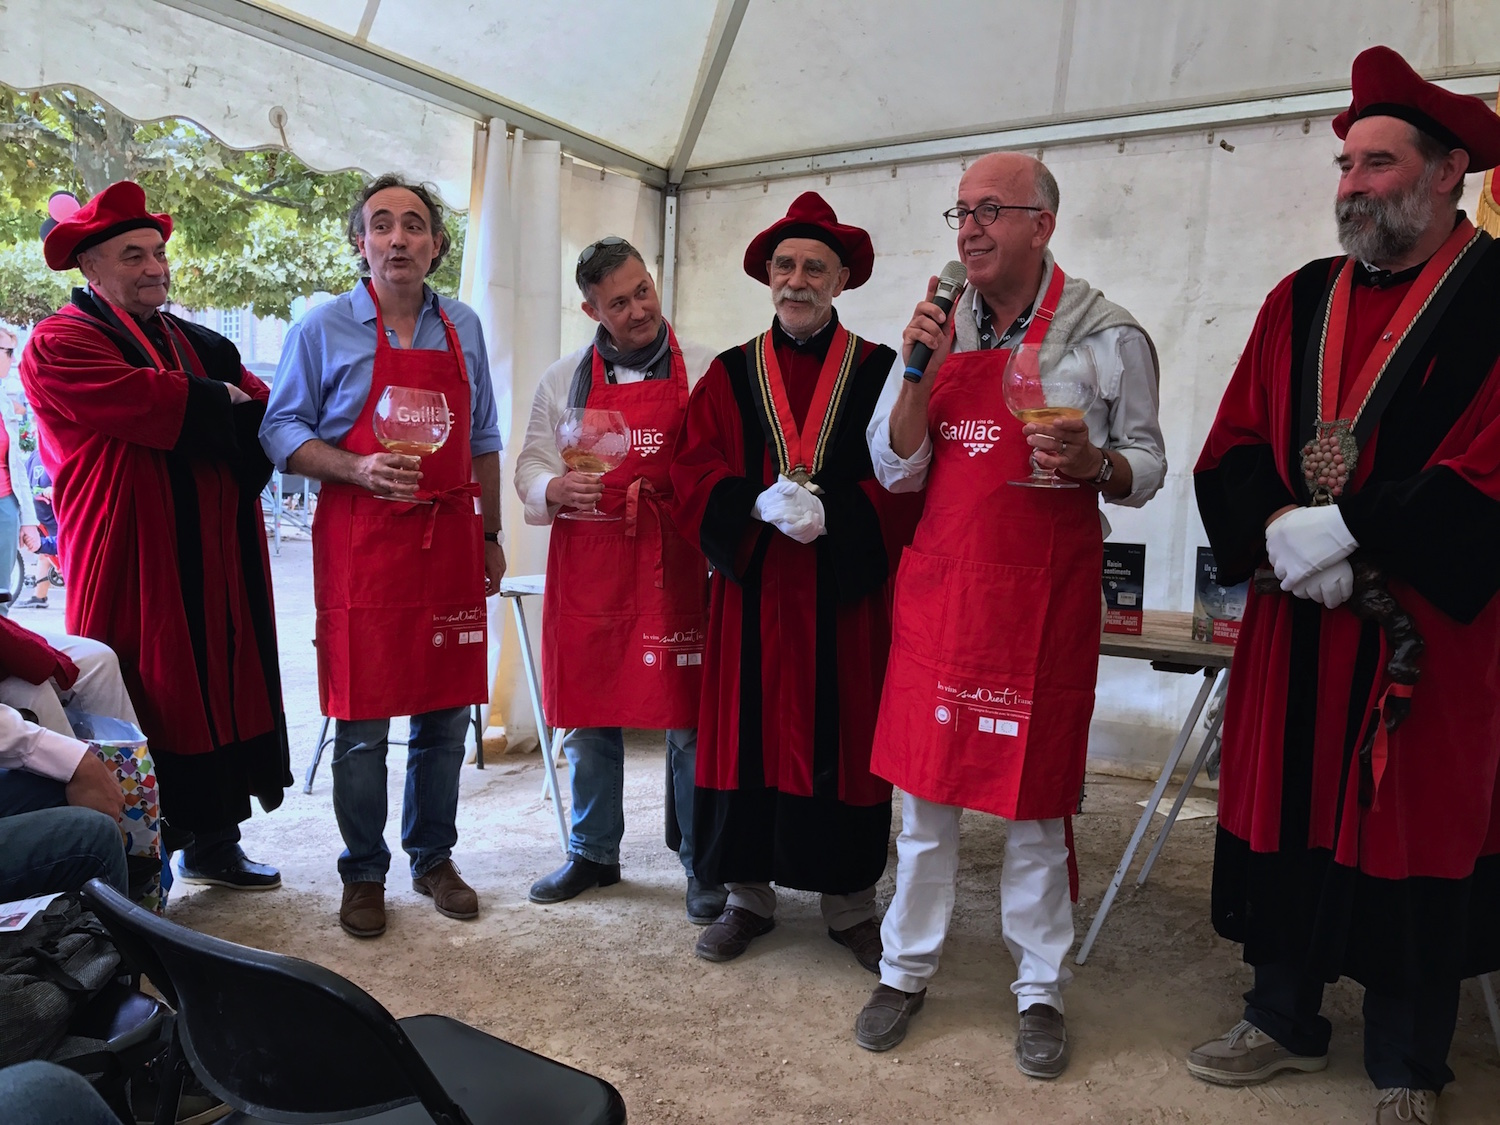 The tough life of a writer of wine mysteries: Induction ceremony to become members of the Gaillac Wine Brotherhood of the Dive Bouteille.